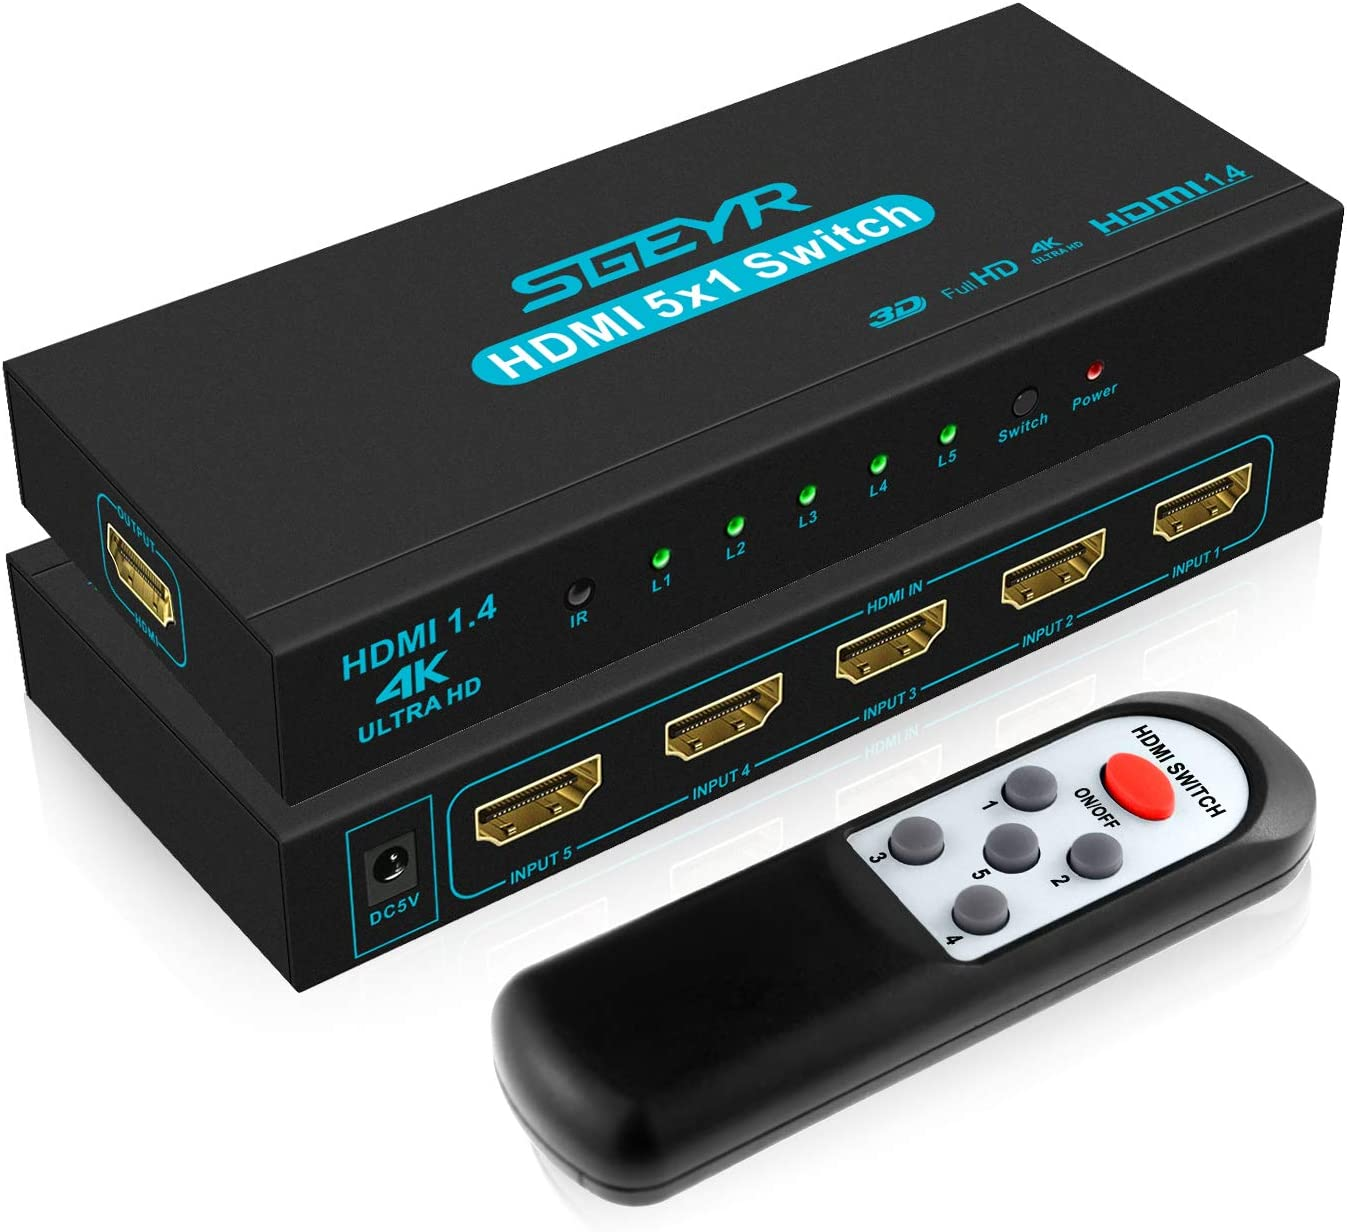 4-Port HDMI Switcher High-Speed Hdmi3 Input 1 Output 1080p HD with Infrared Remote Control Switcher